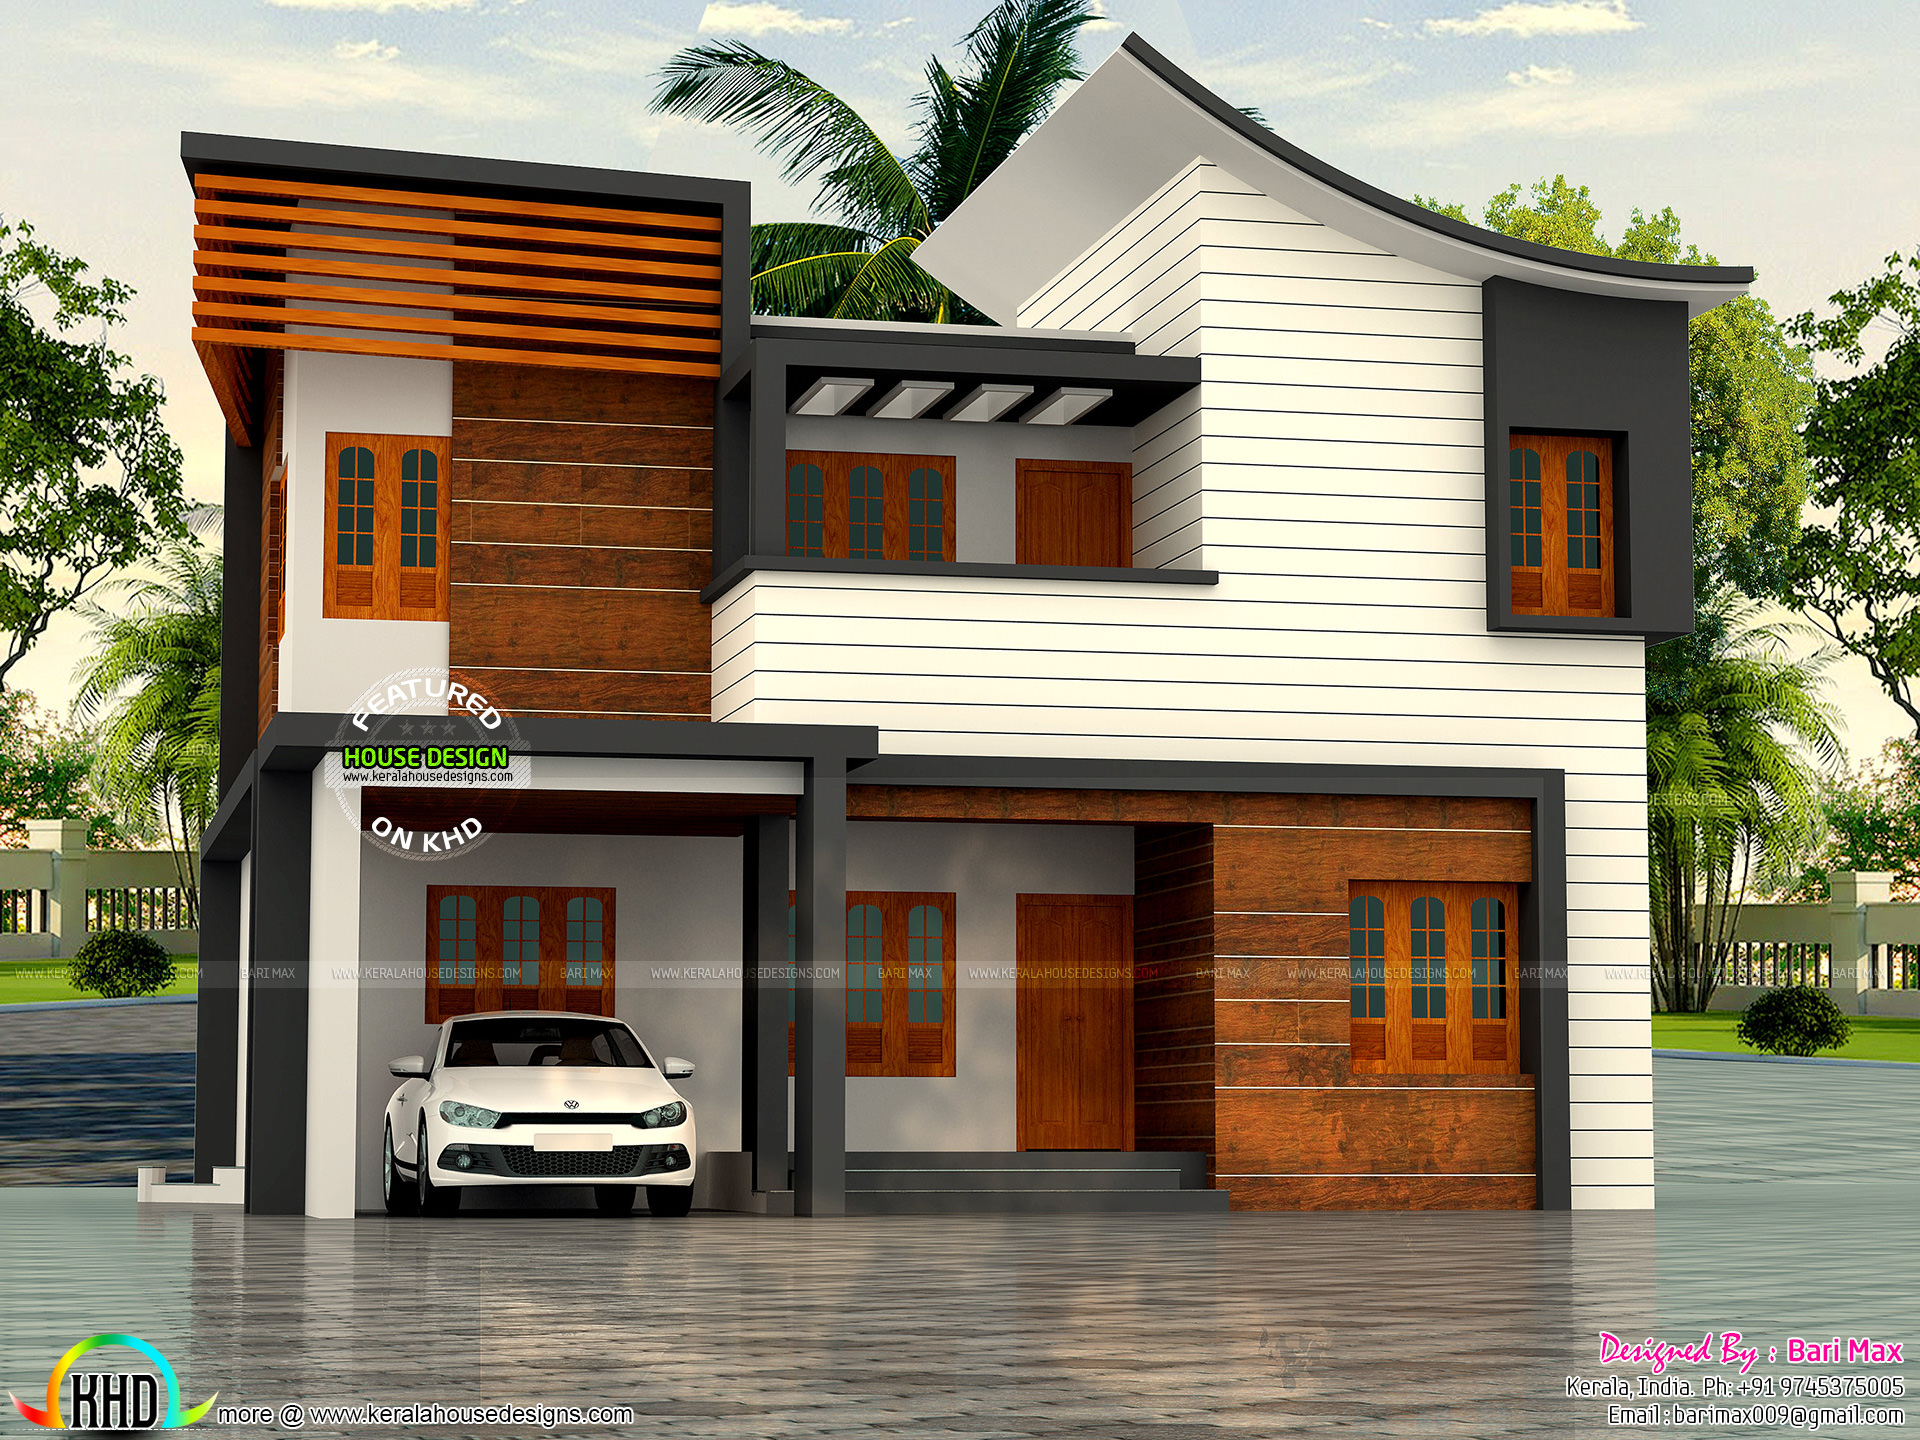 20 Lakh Home In Surat 30 Lakh Cost 1900 Sq Ft 4 Bedroom Home Kerala Home